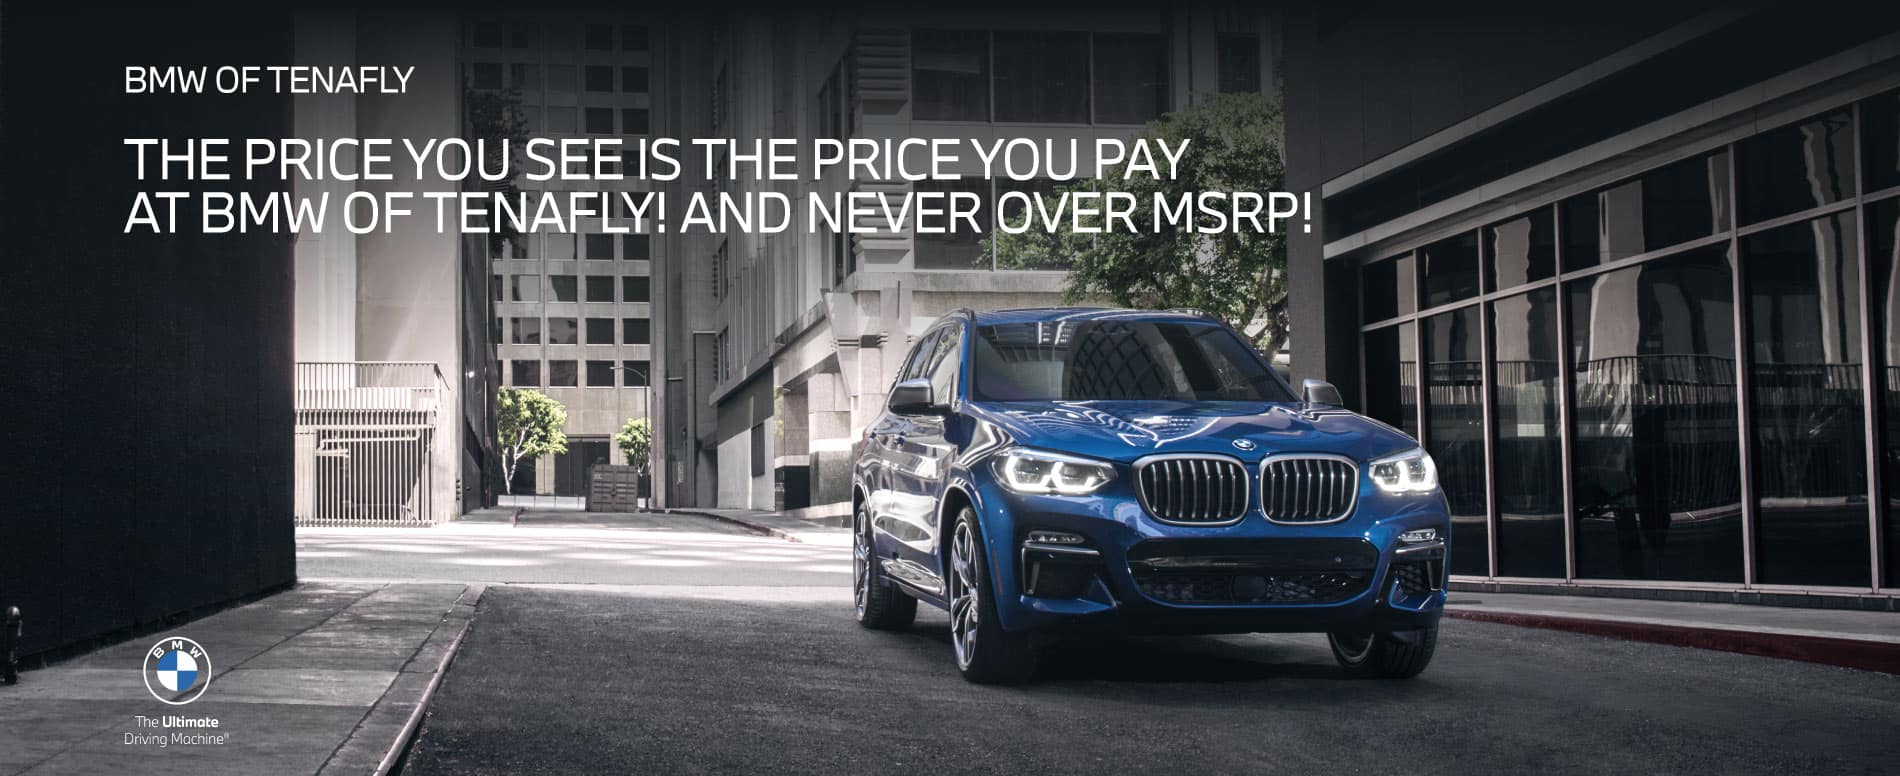 The price you see is the price you pay at BMW of Tenafly! Never over MSRP!